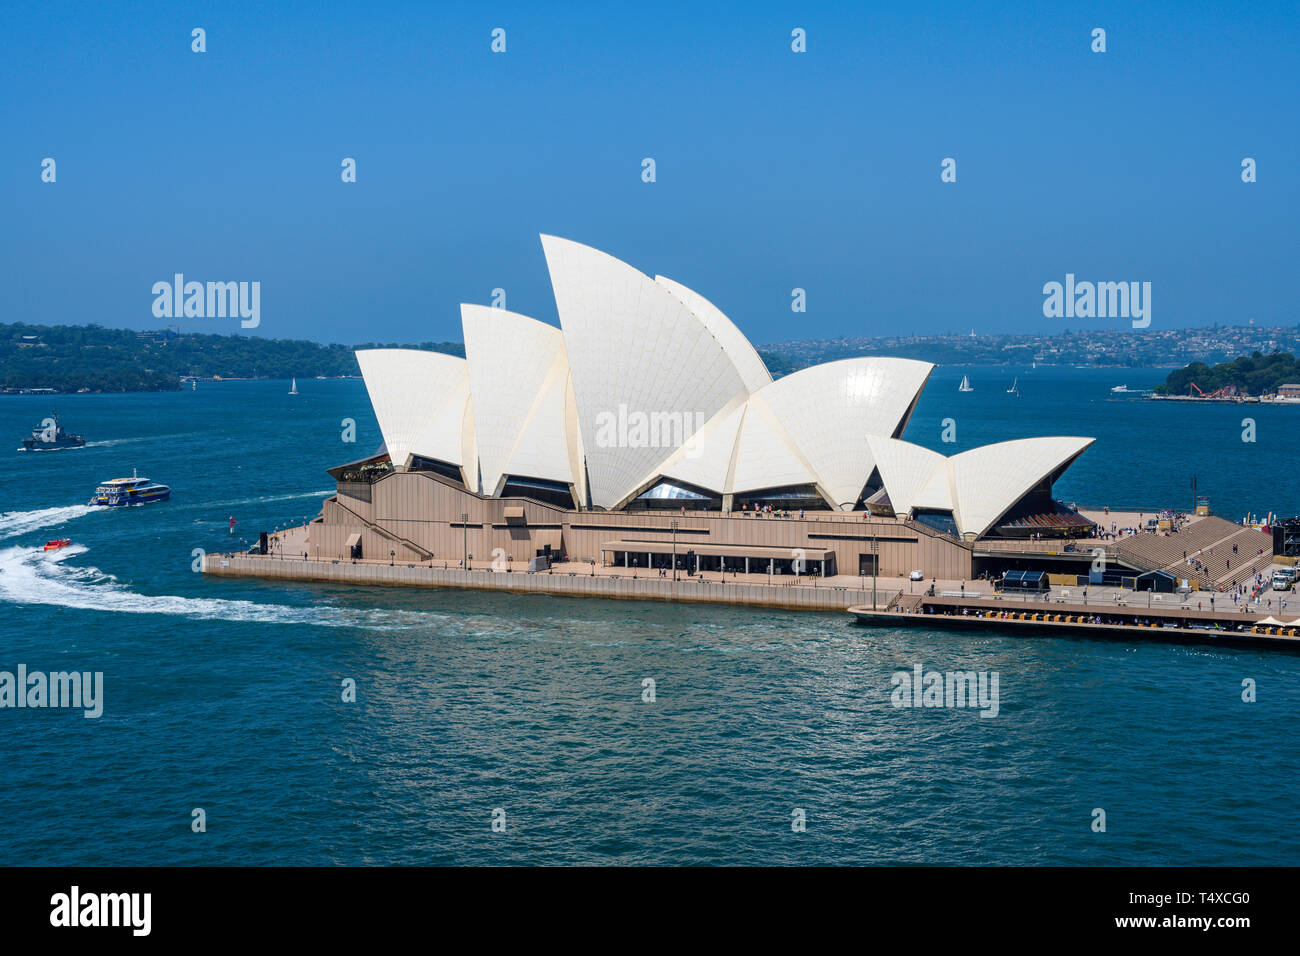 Sydney Opera House is a performing arts centre at Sydney harbour, New South Wales, Australia.  Designed by Jørn Utzon, it opened in 1973. Stock Photo